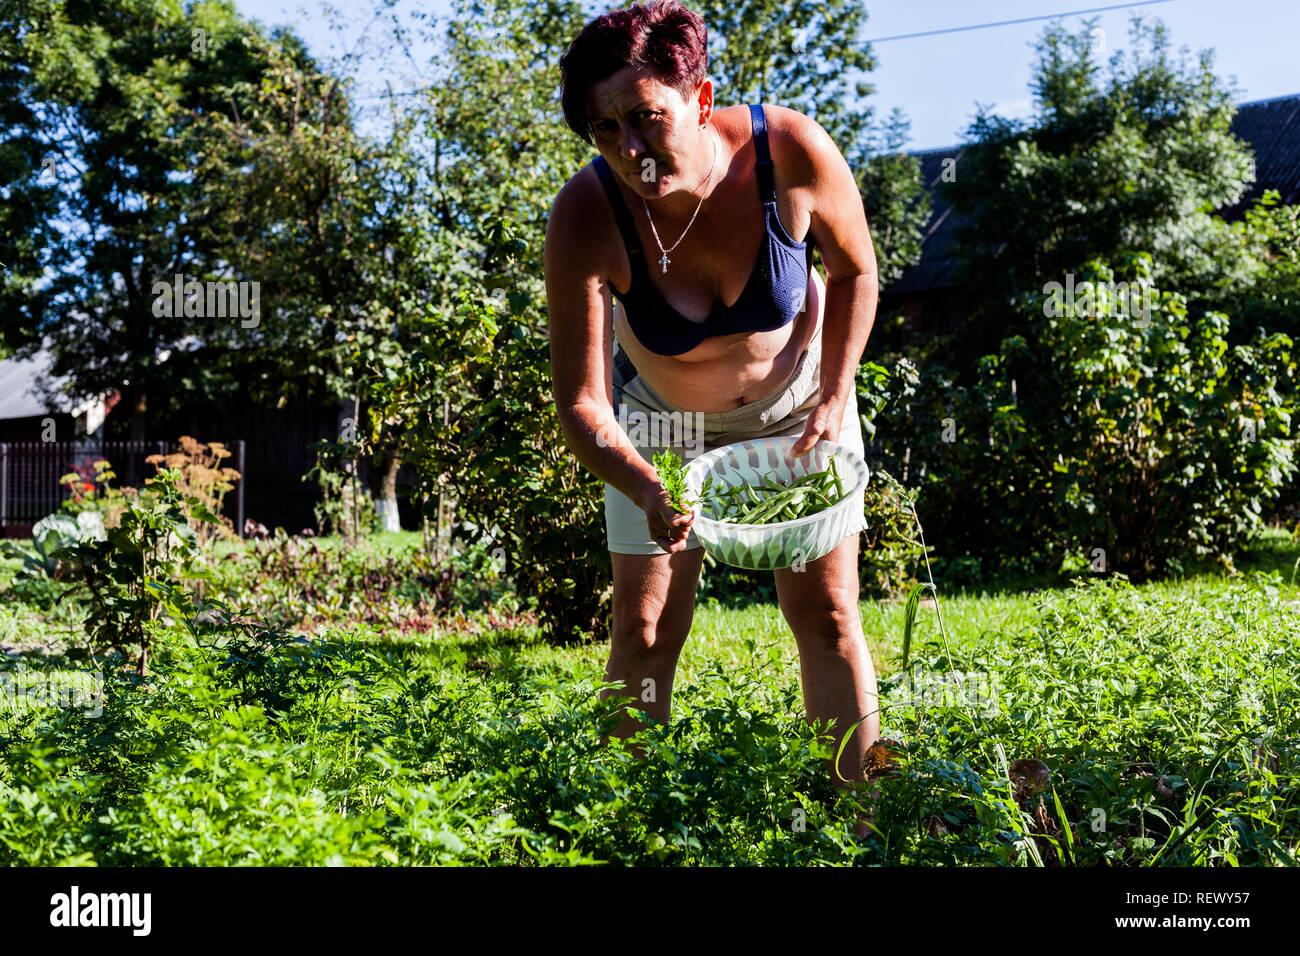 Front view of a woman wearing brassiere. The gardener holding a basket full of beans. Harvesting the crops produce in the garden. Backyard farming ide - Stock Image